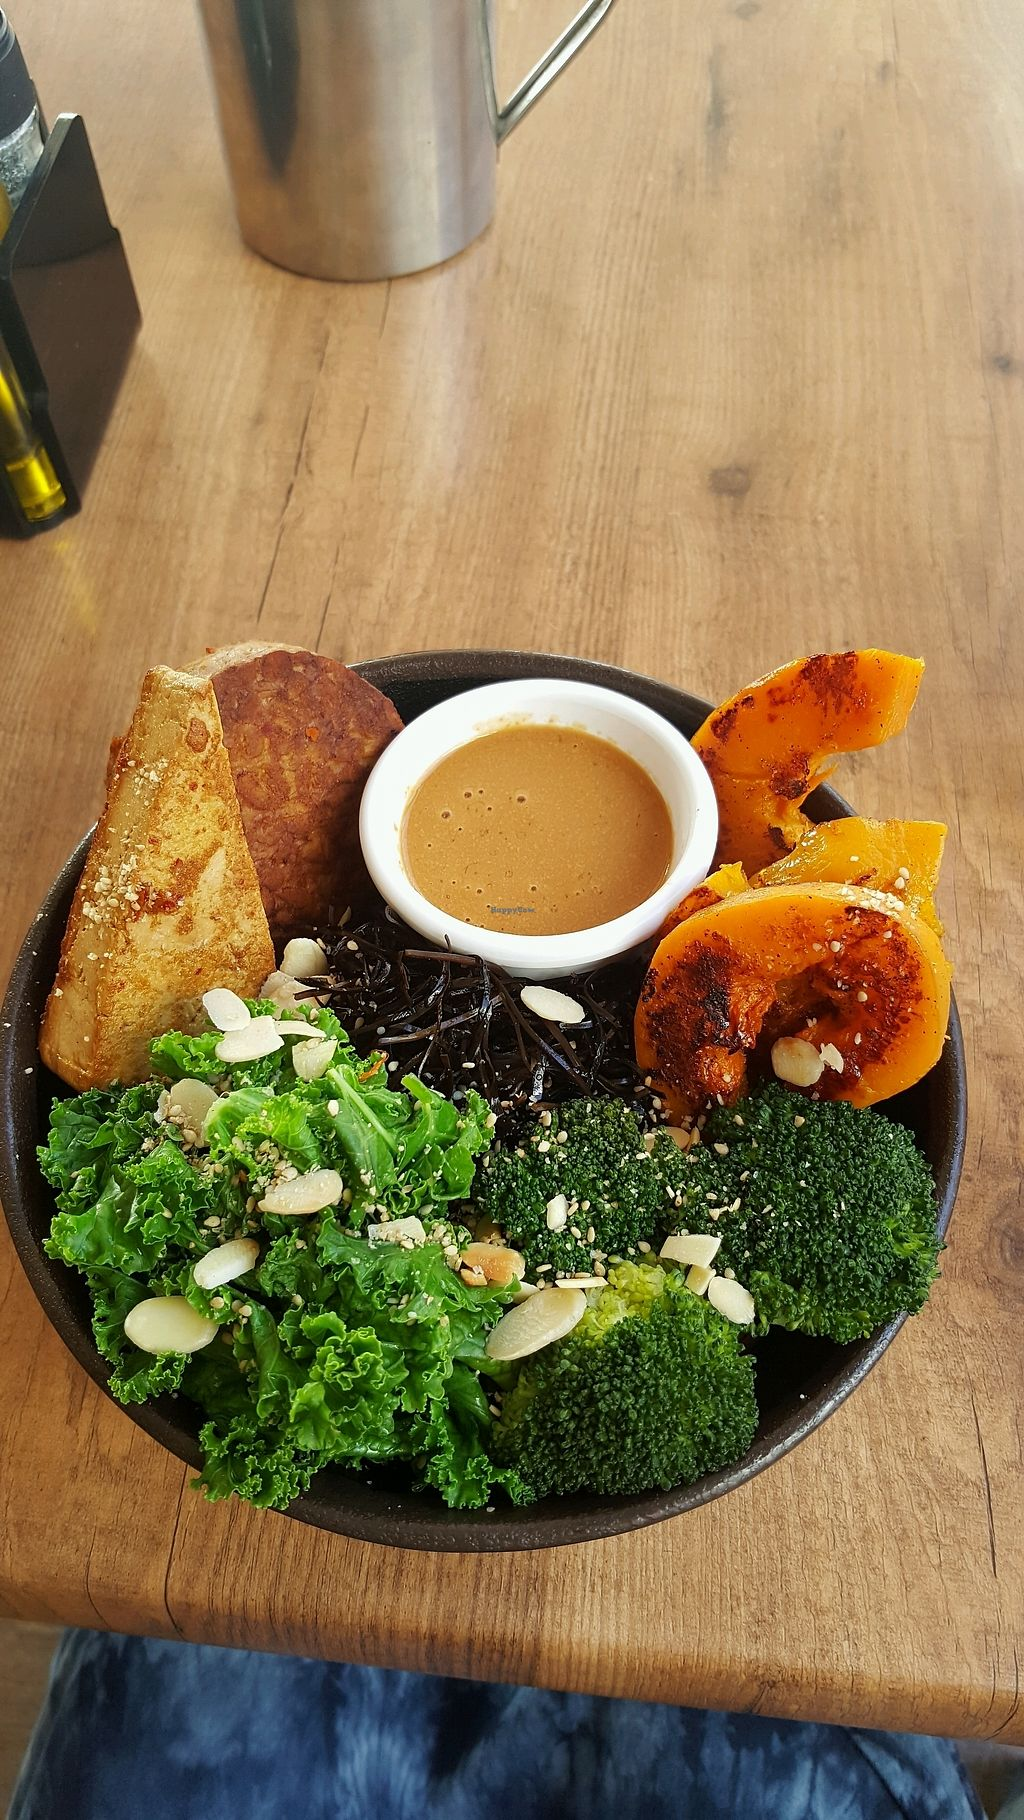 """Photo of Passion Cafe Playa den Bossa  by <a href=""""/members/profile/Clare"""">Clare</a> <br/>Tofu, Sweet Potato,Tempeh grain bowl <br/> September 19, 2017  - <a href='/contact/abuse/image/27124/306079'>Report</a>"""